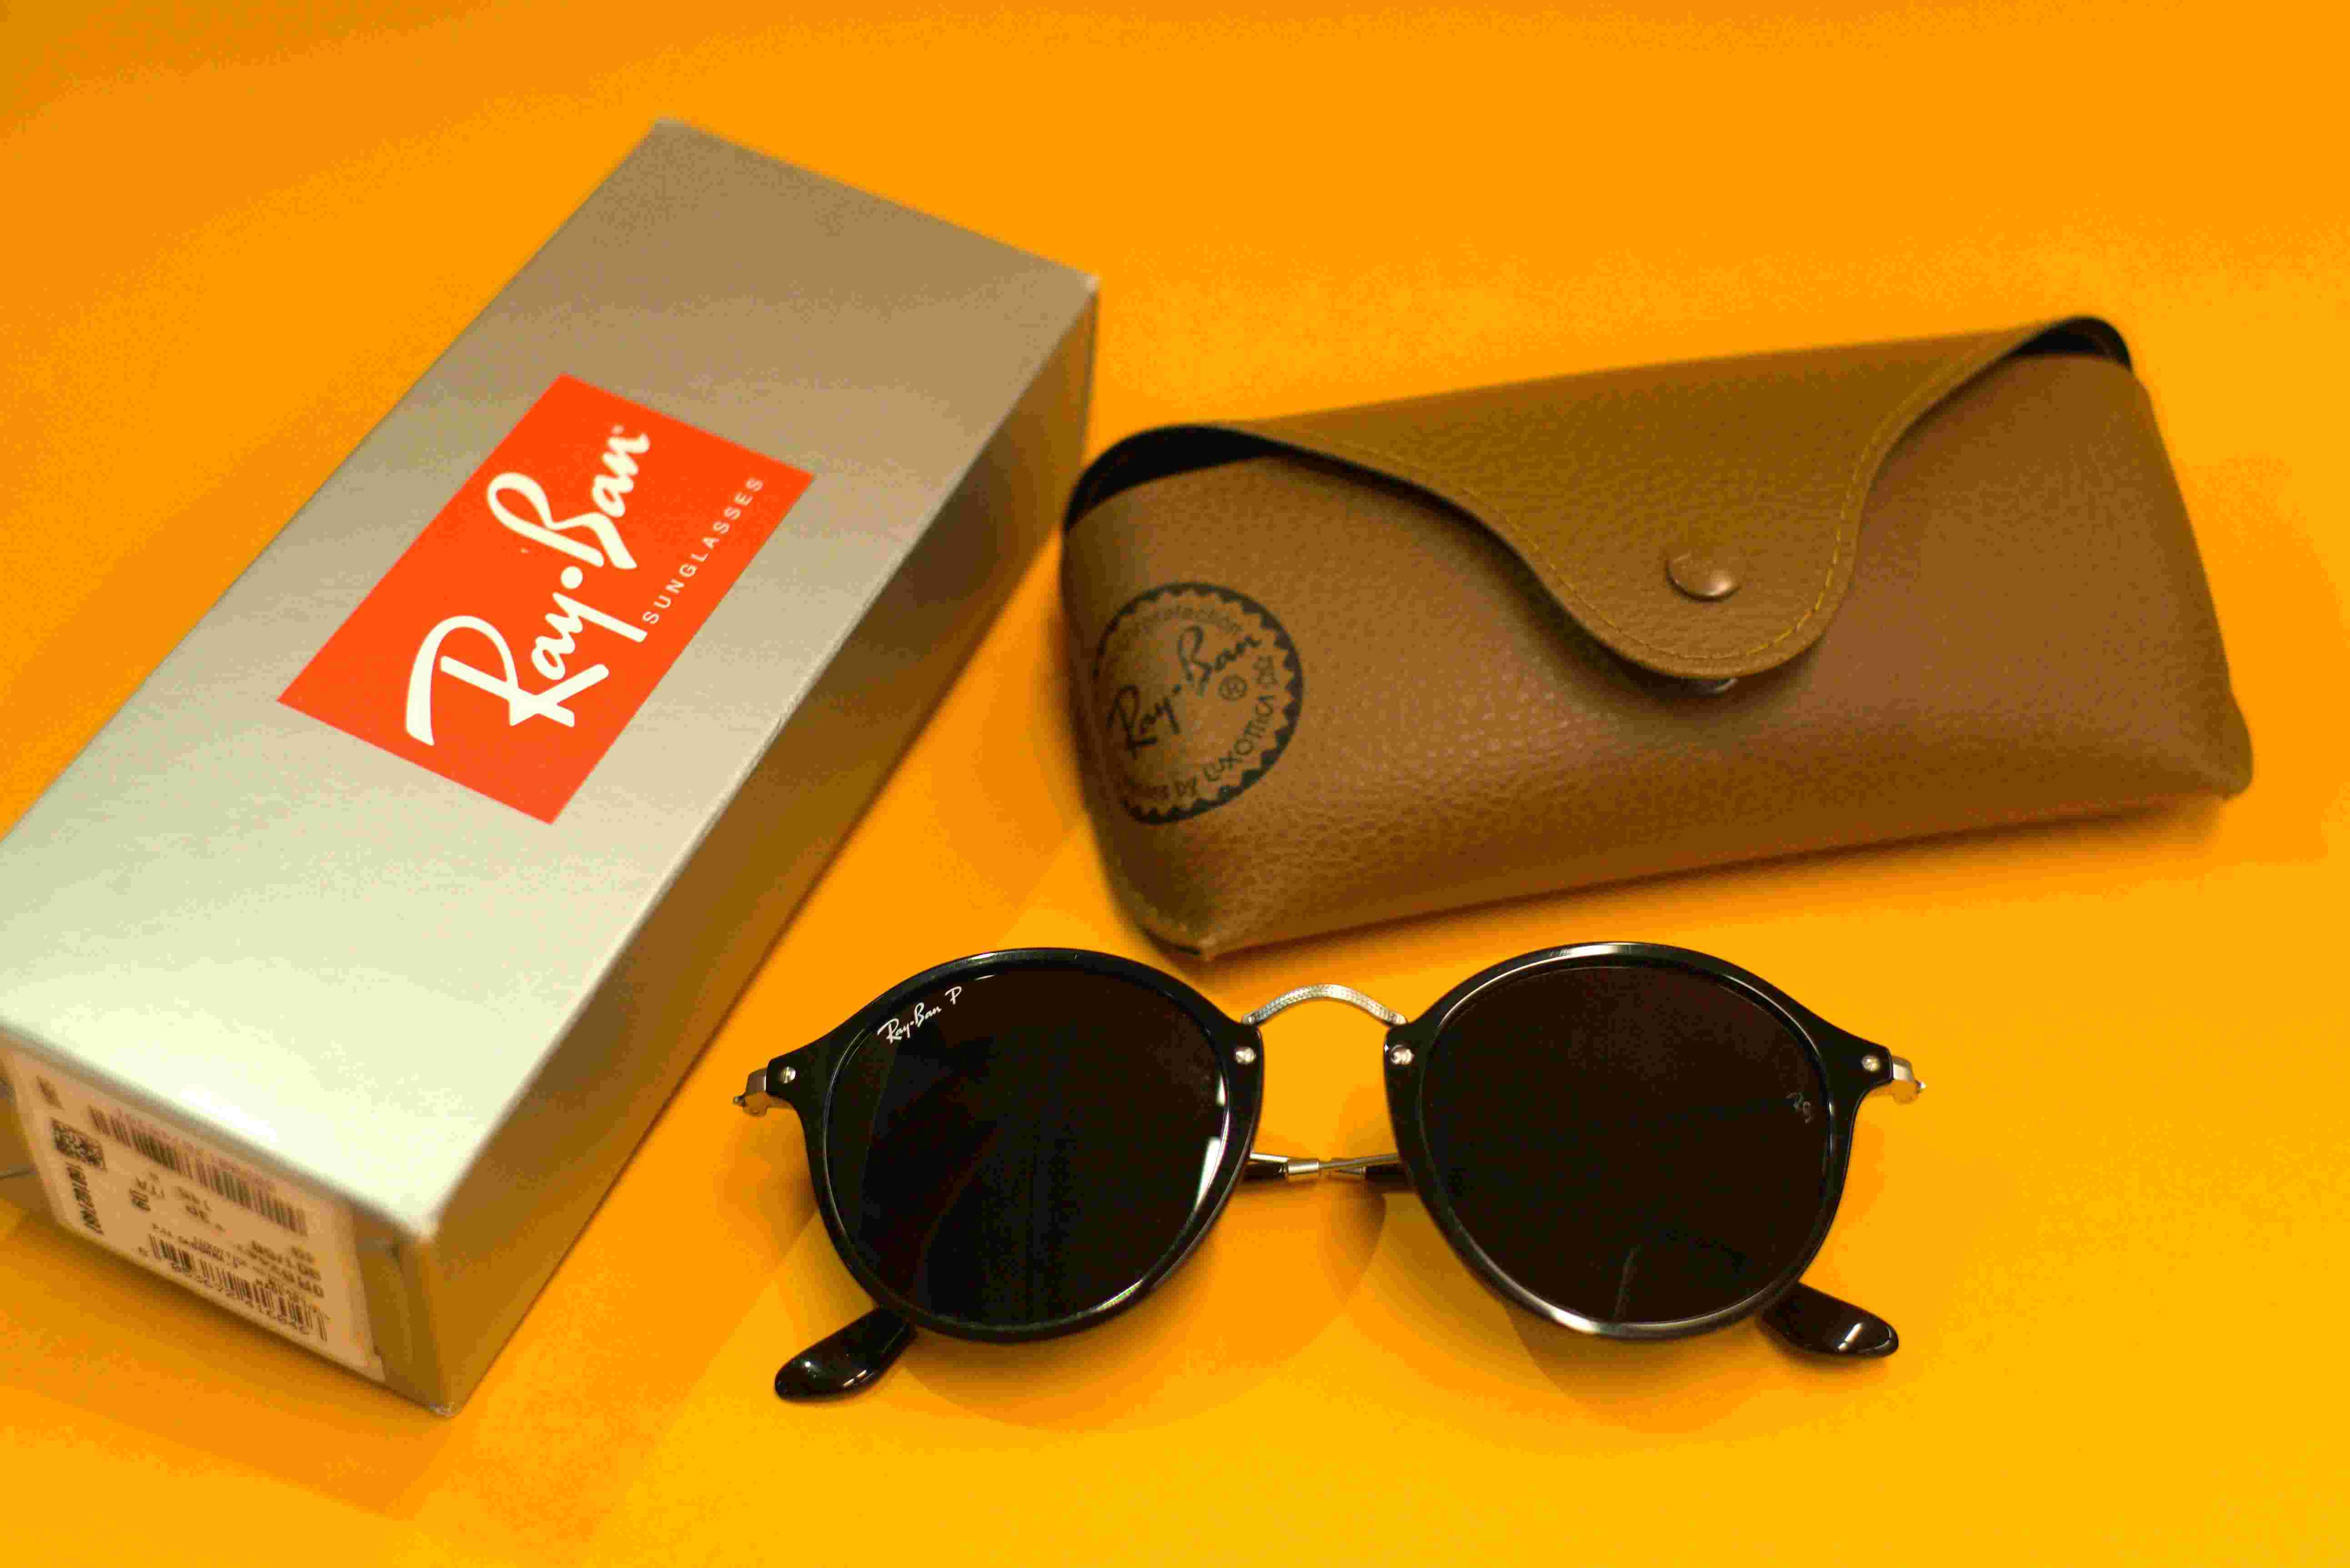 c35032ce90 Guide to spotting authentic Ray-Ban sunglasses